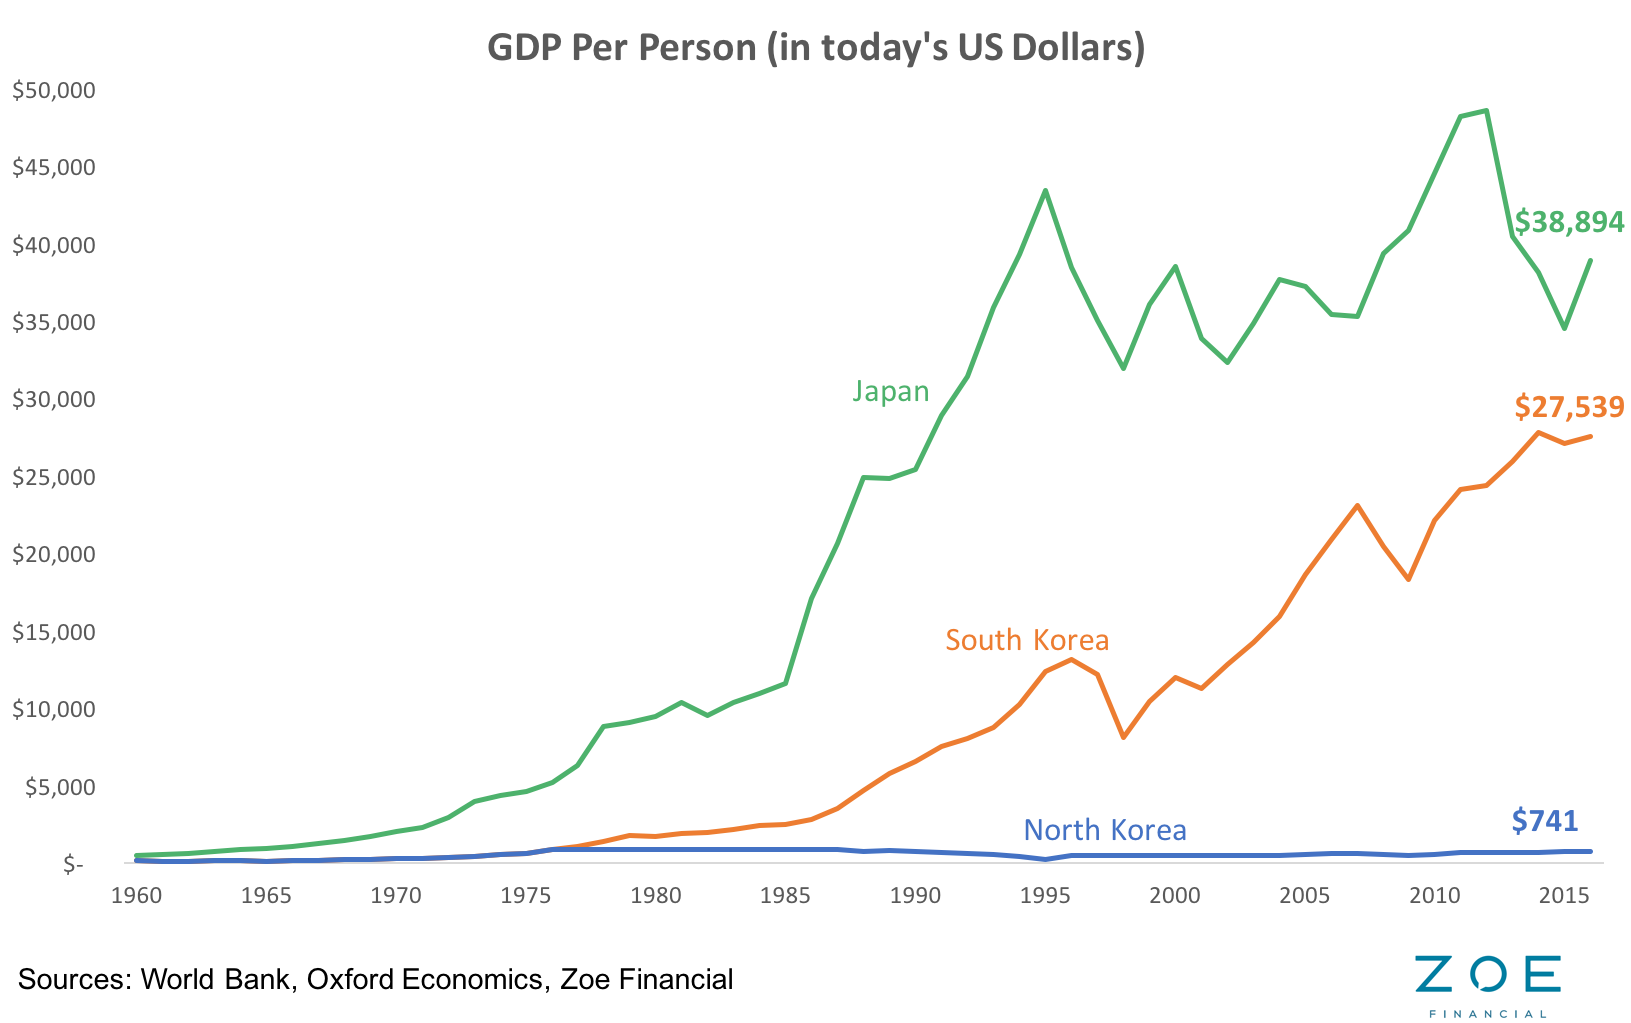 GDP per capita North Korea Blog 1.png